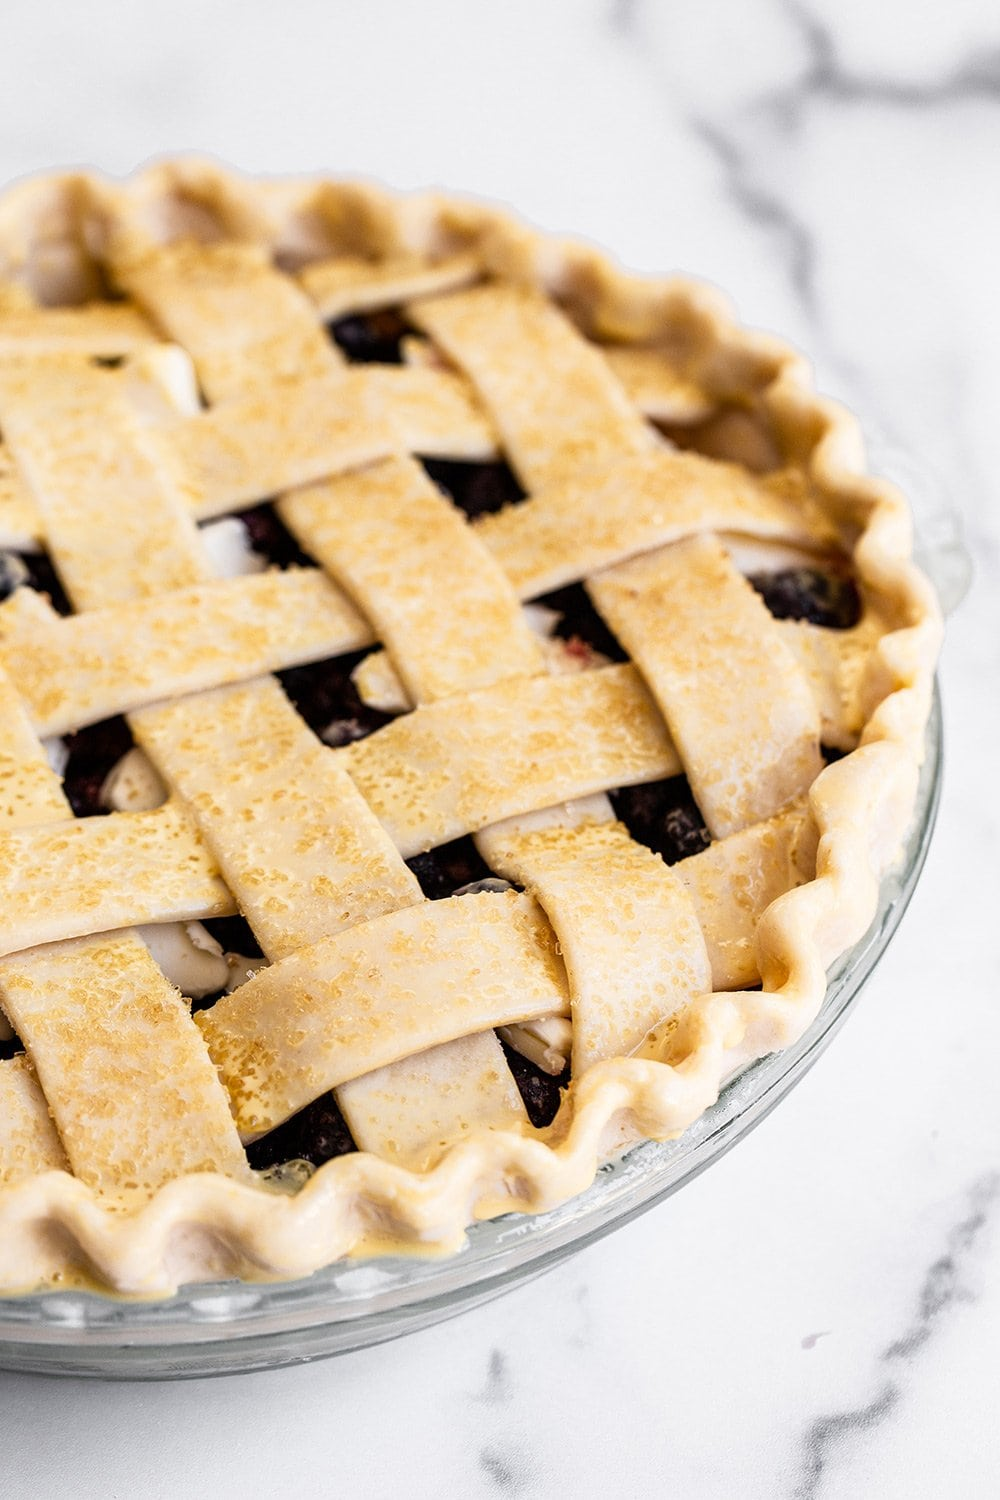 photo showing a beautiful homemade pie with from scratch lattice pie crust